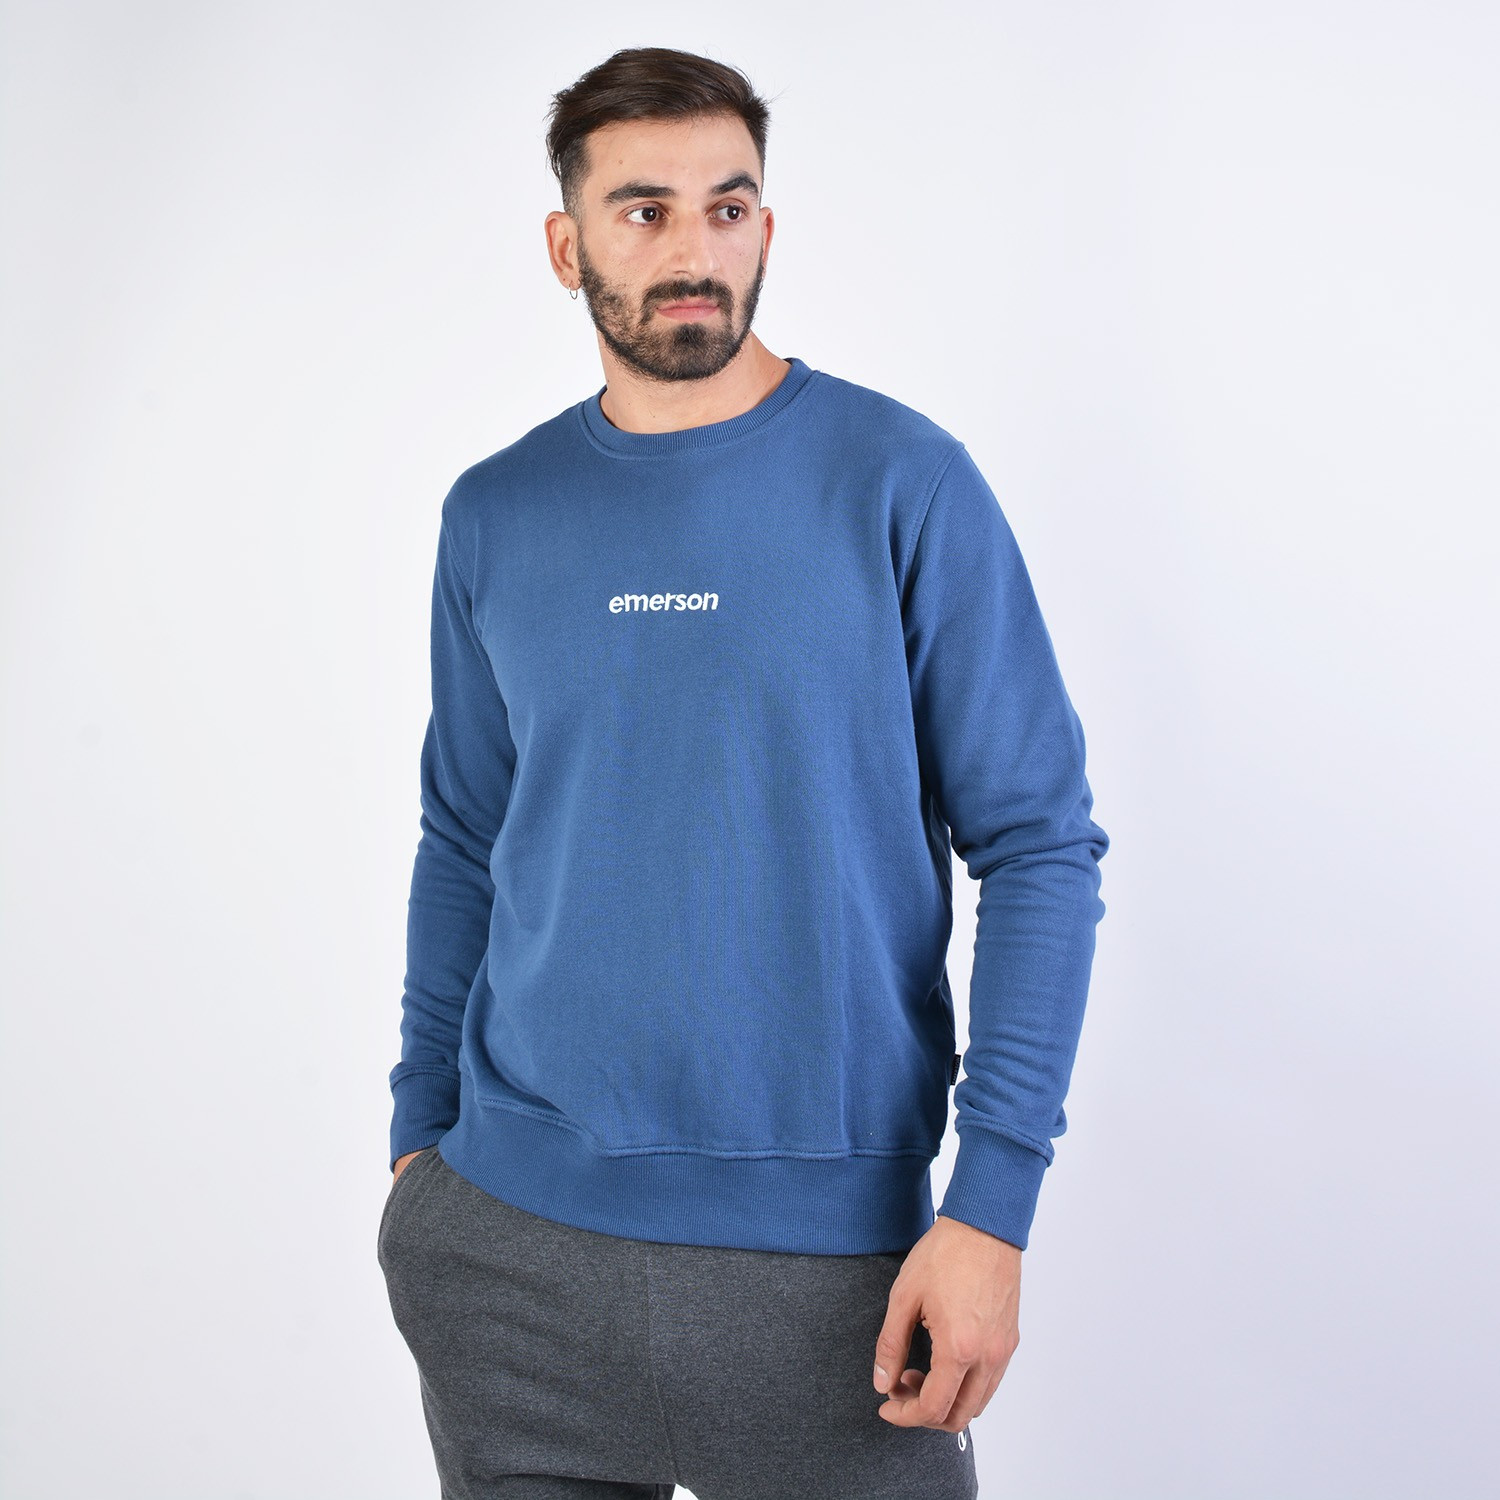 Emerson Men's Neckline Sweatshirt (9000036118_13008)